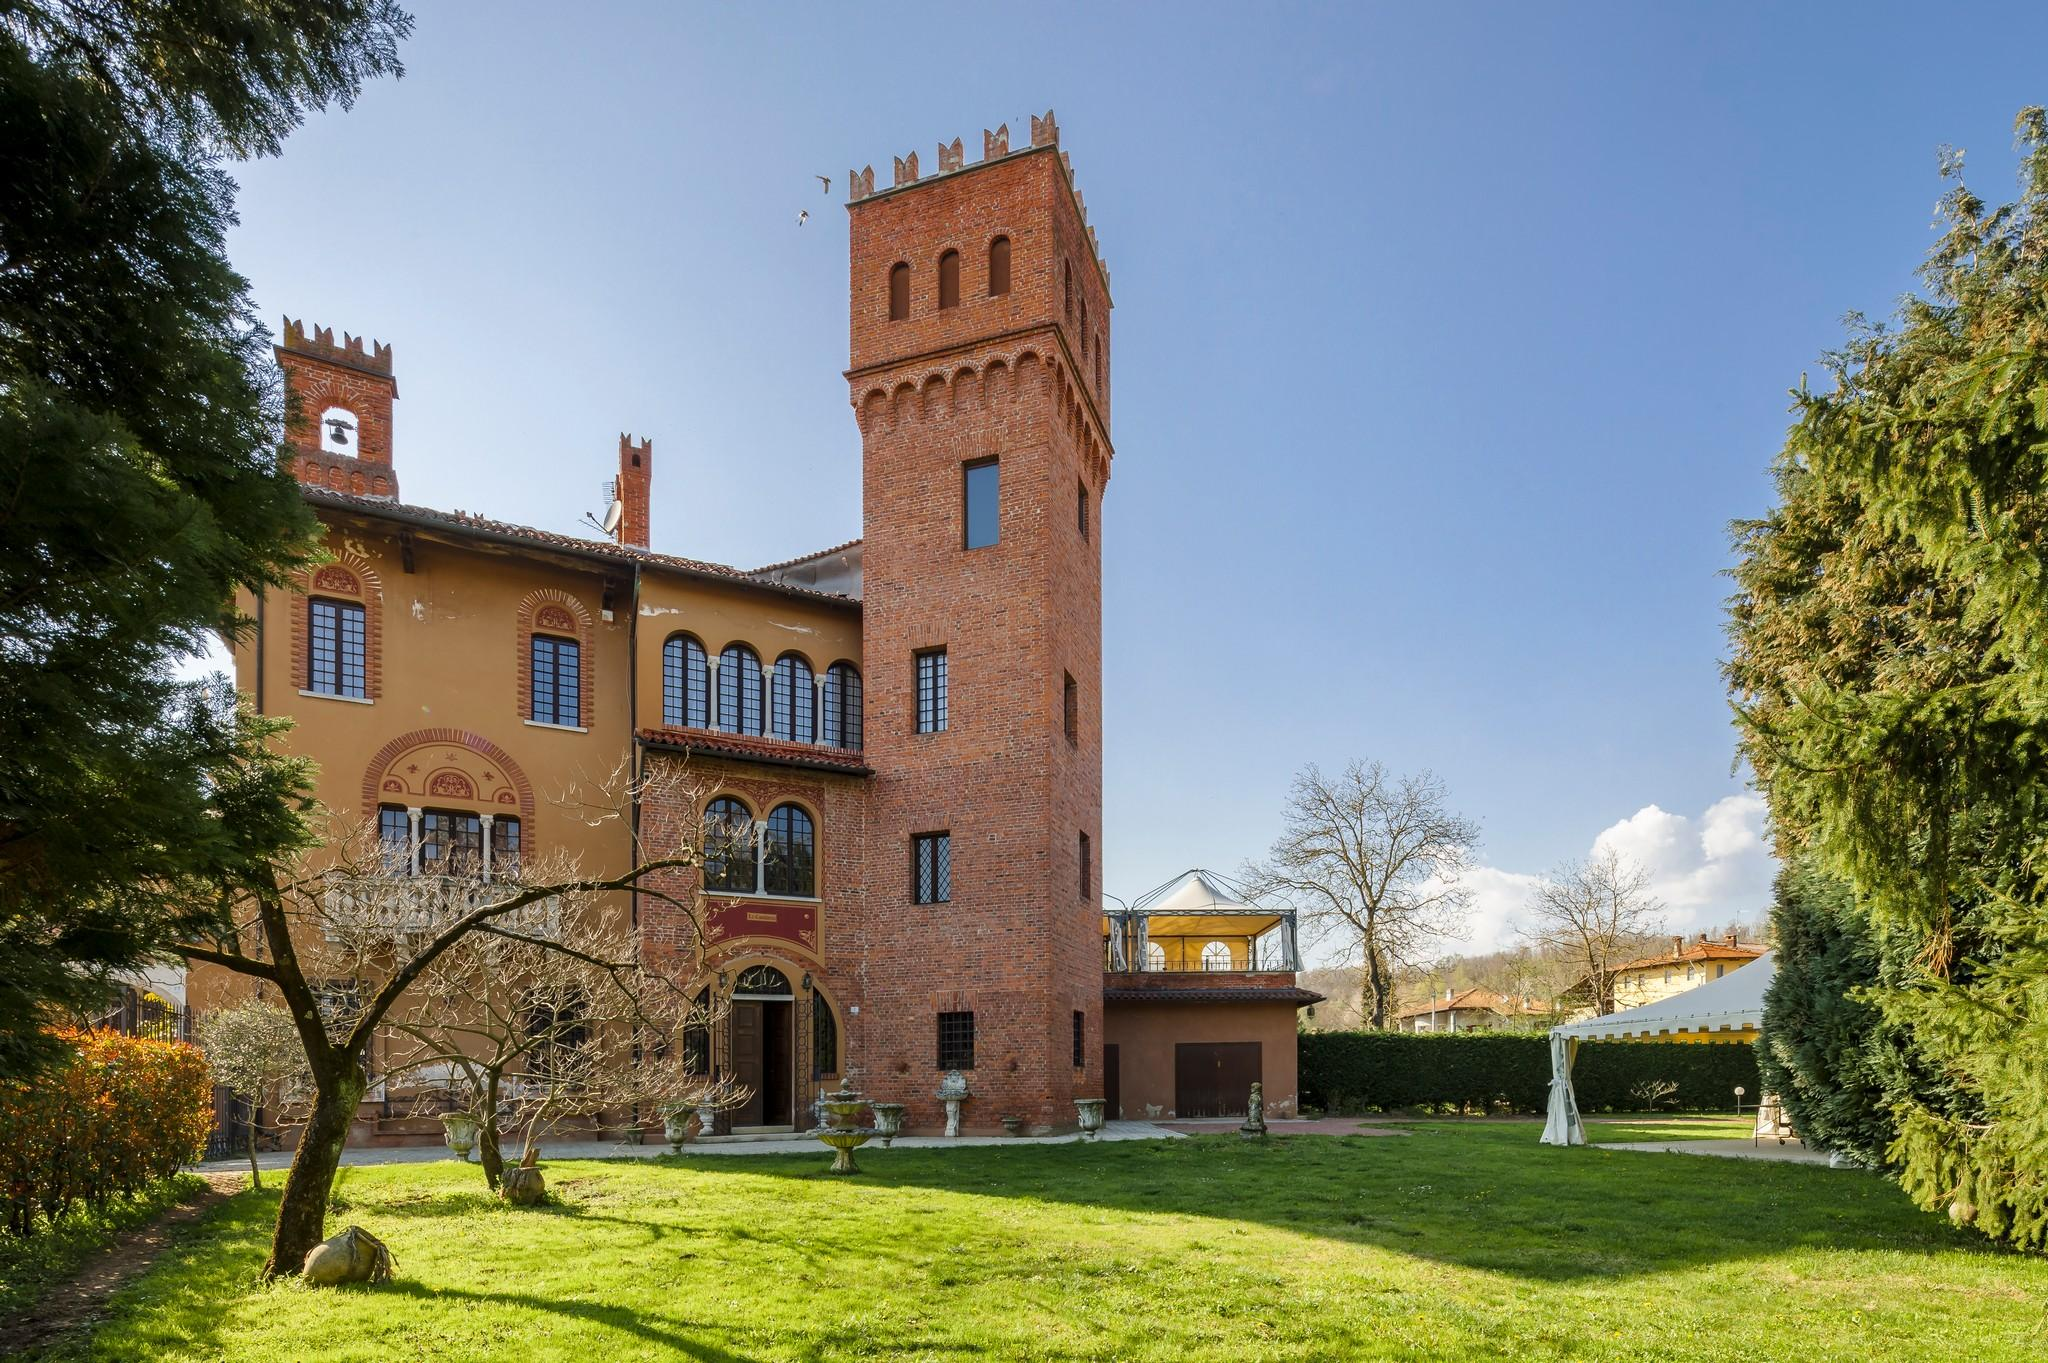 Castelli in Vendita e Affitto in Italia | Italy Sotheby's Realty - sothebys.photo 1